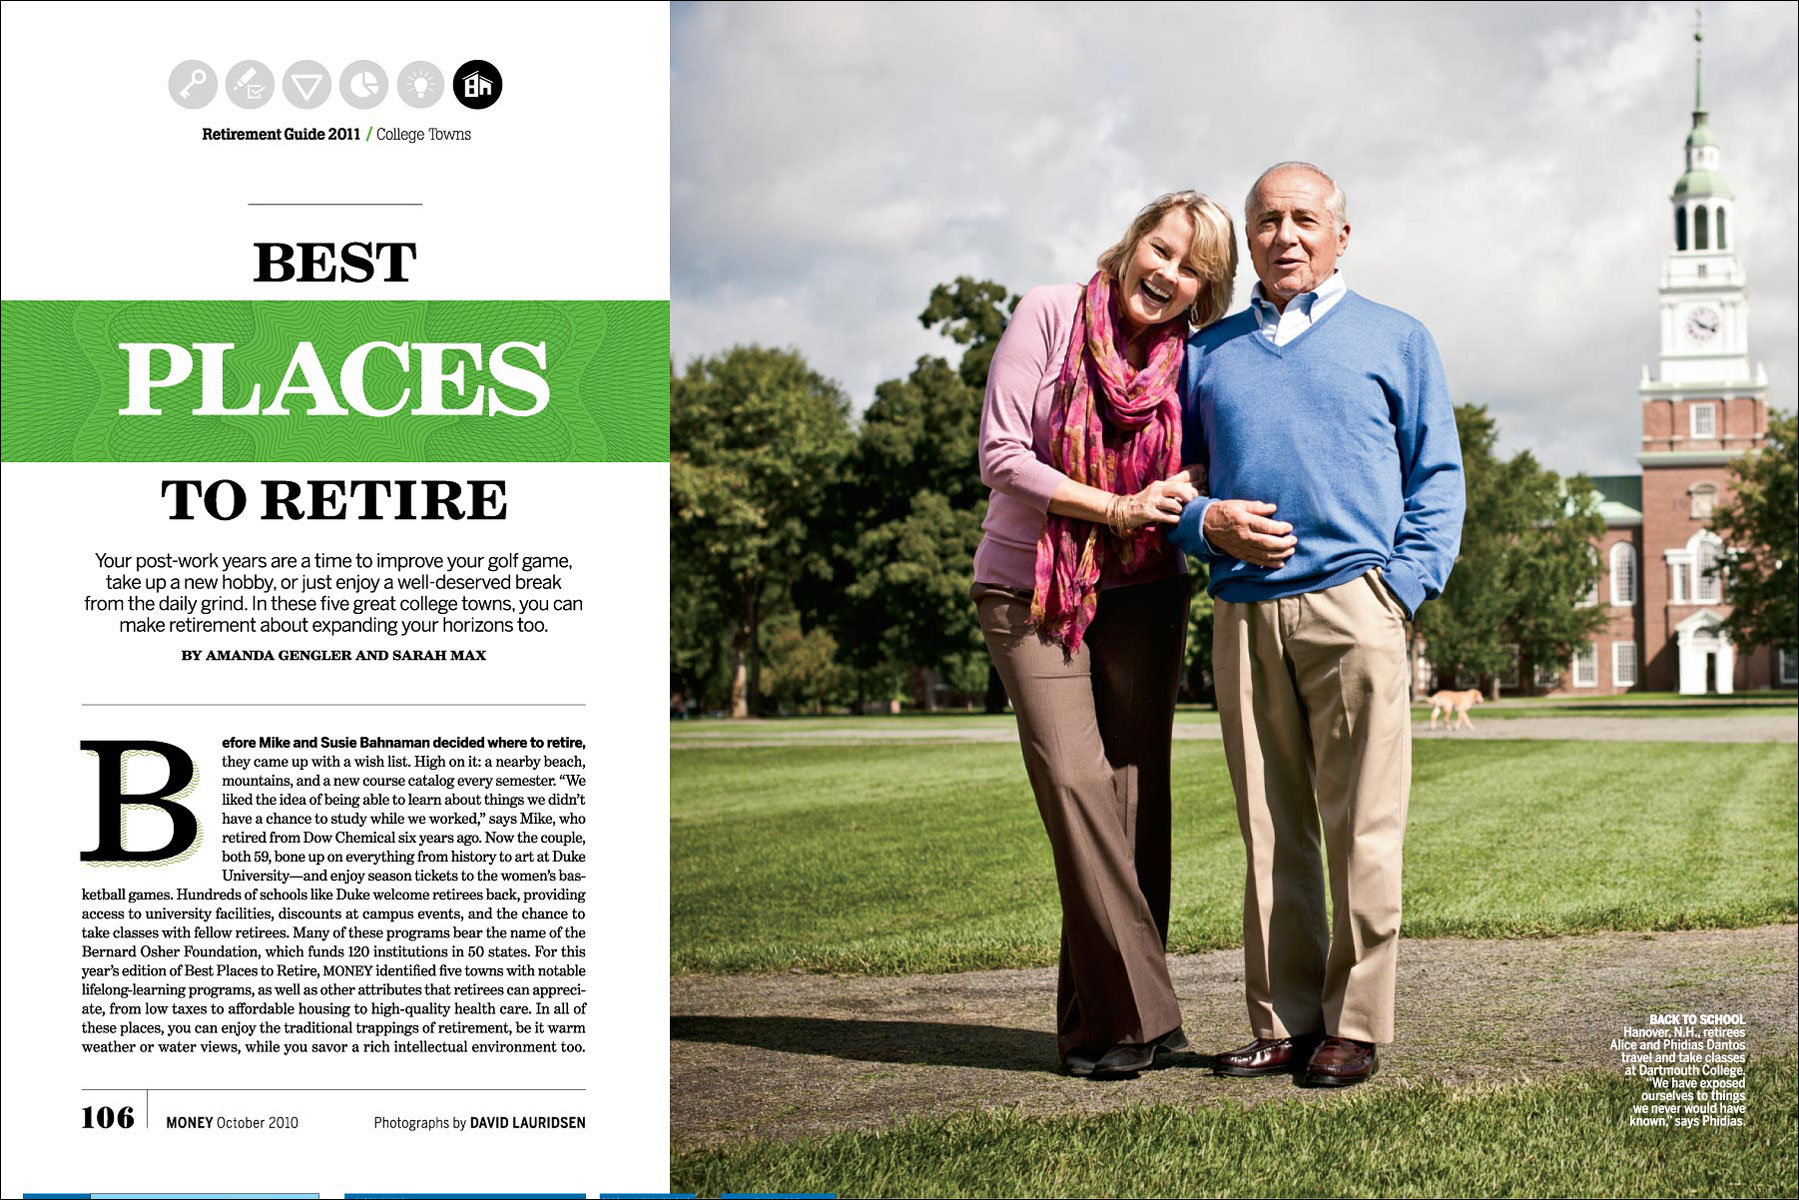 Retirement for Money Magazine